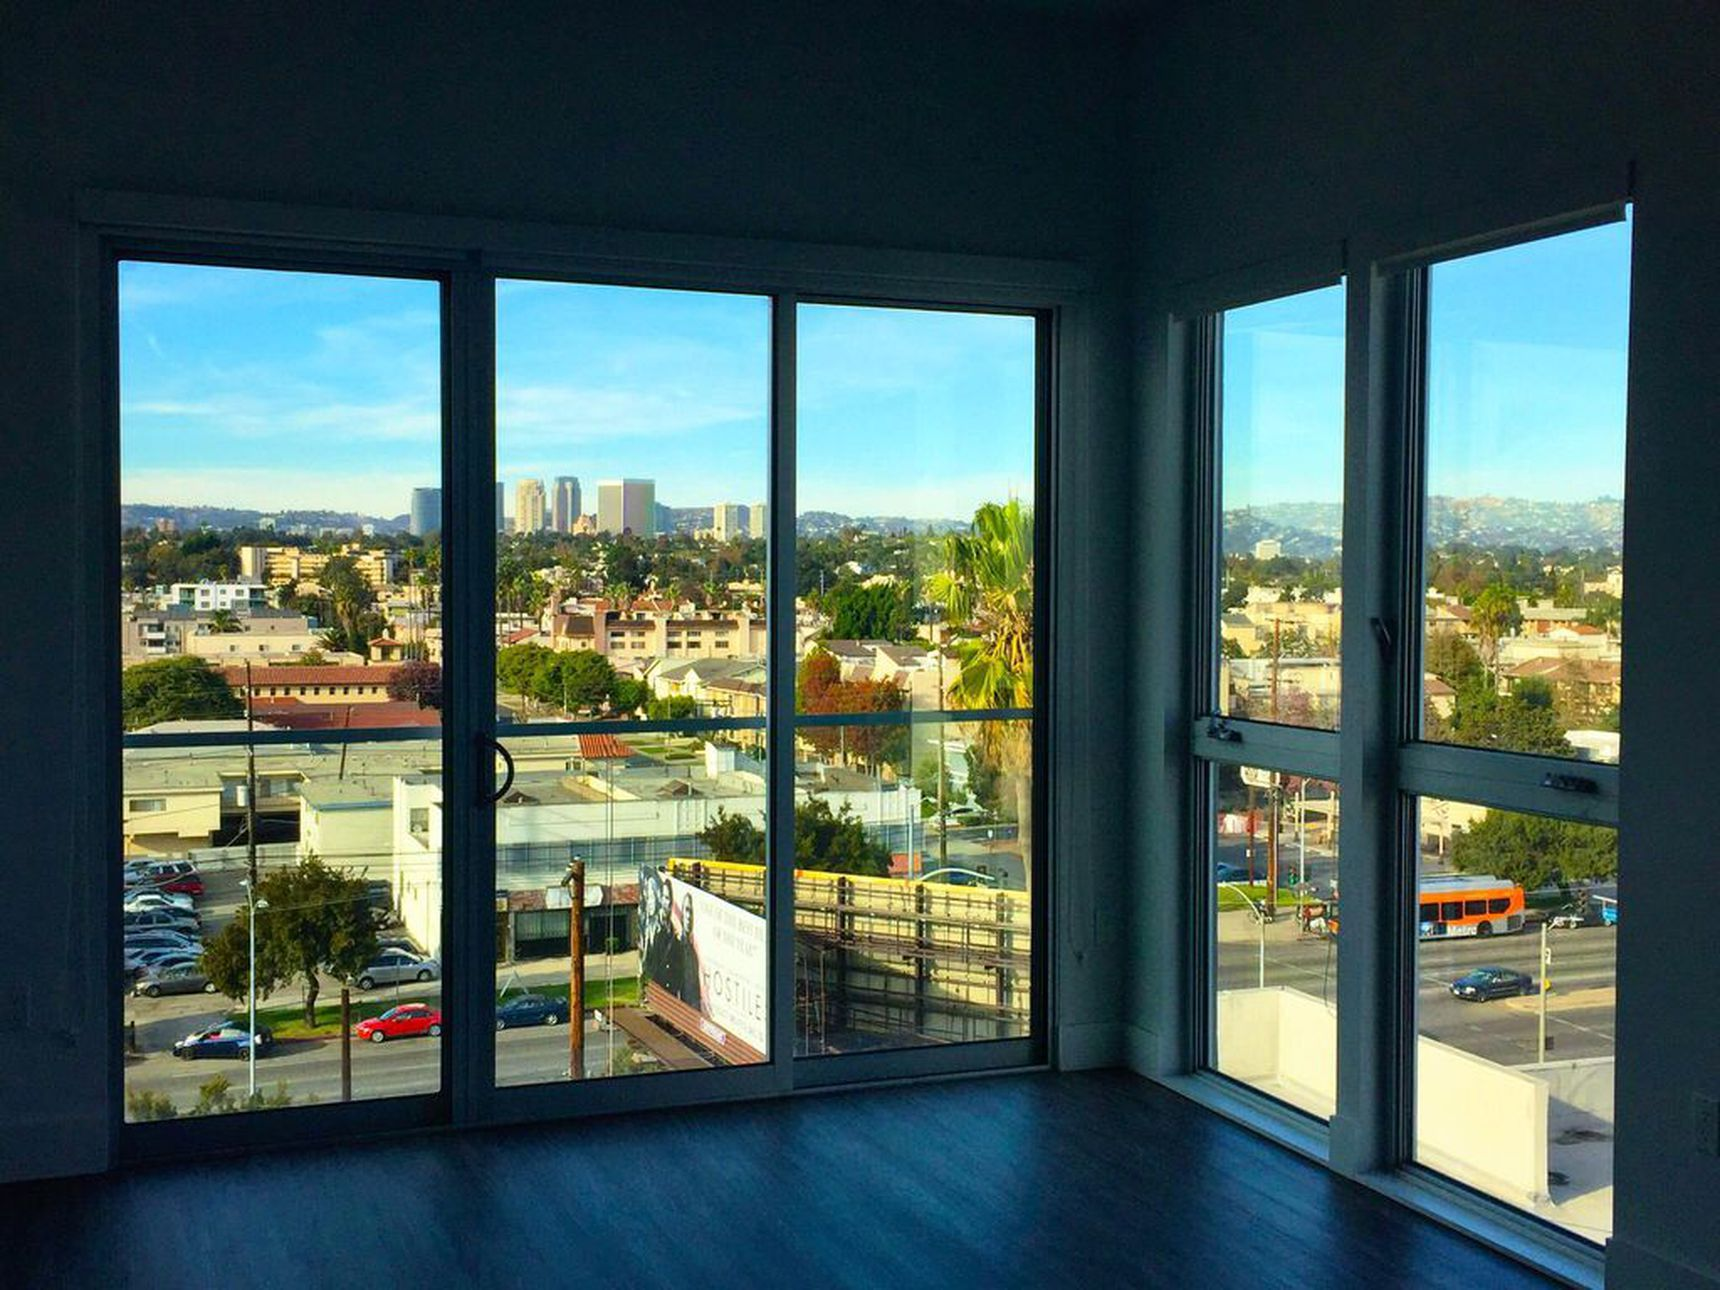 Los Angeles apartments What 2,700 rents in LA right now